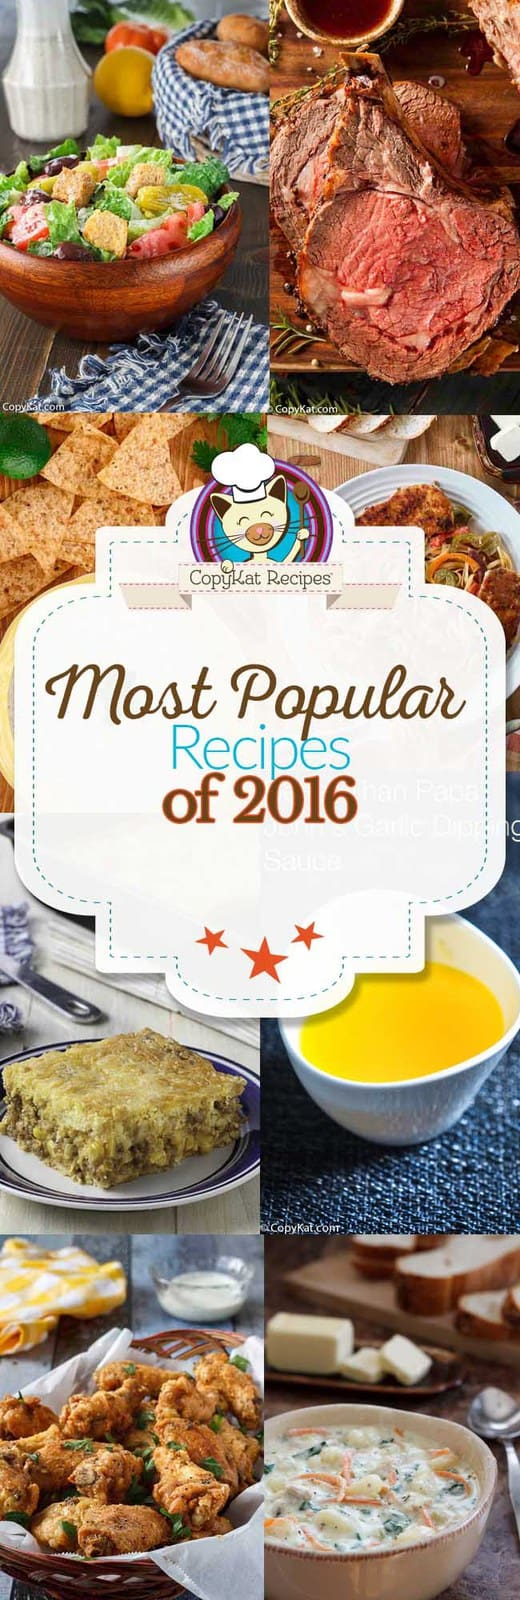 Most popular CopyKat Recipes of 2016.